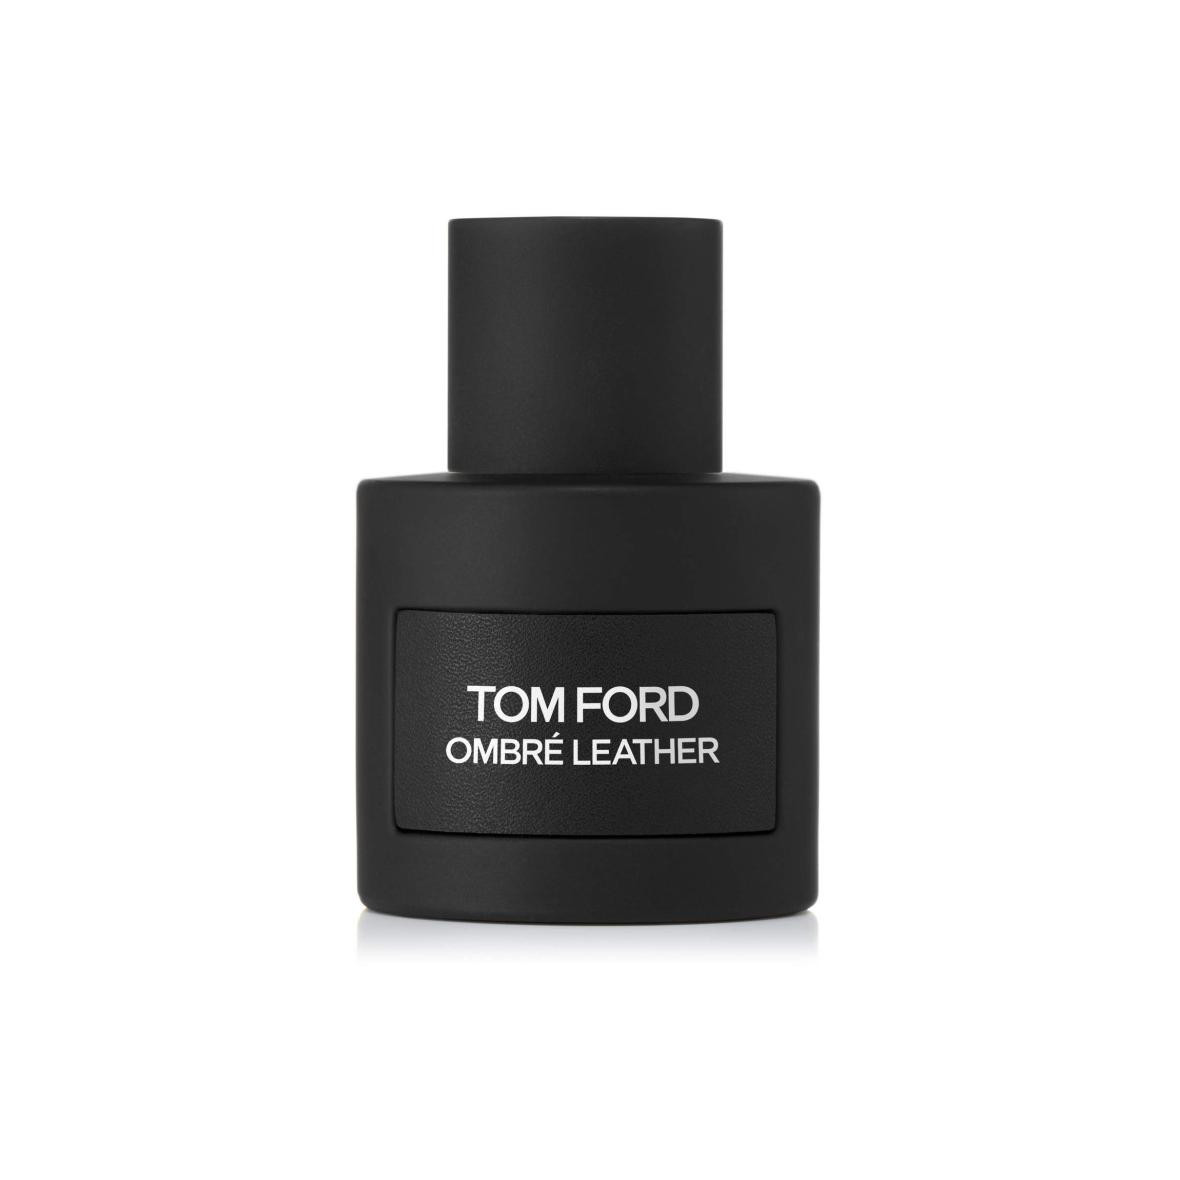 Louis Vuitton Launches Mens Fragrance And Ombre Nomade